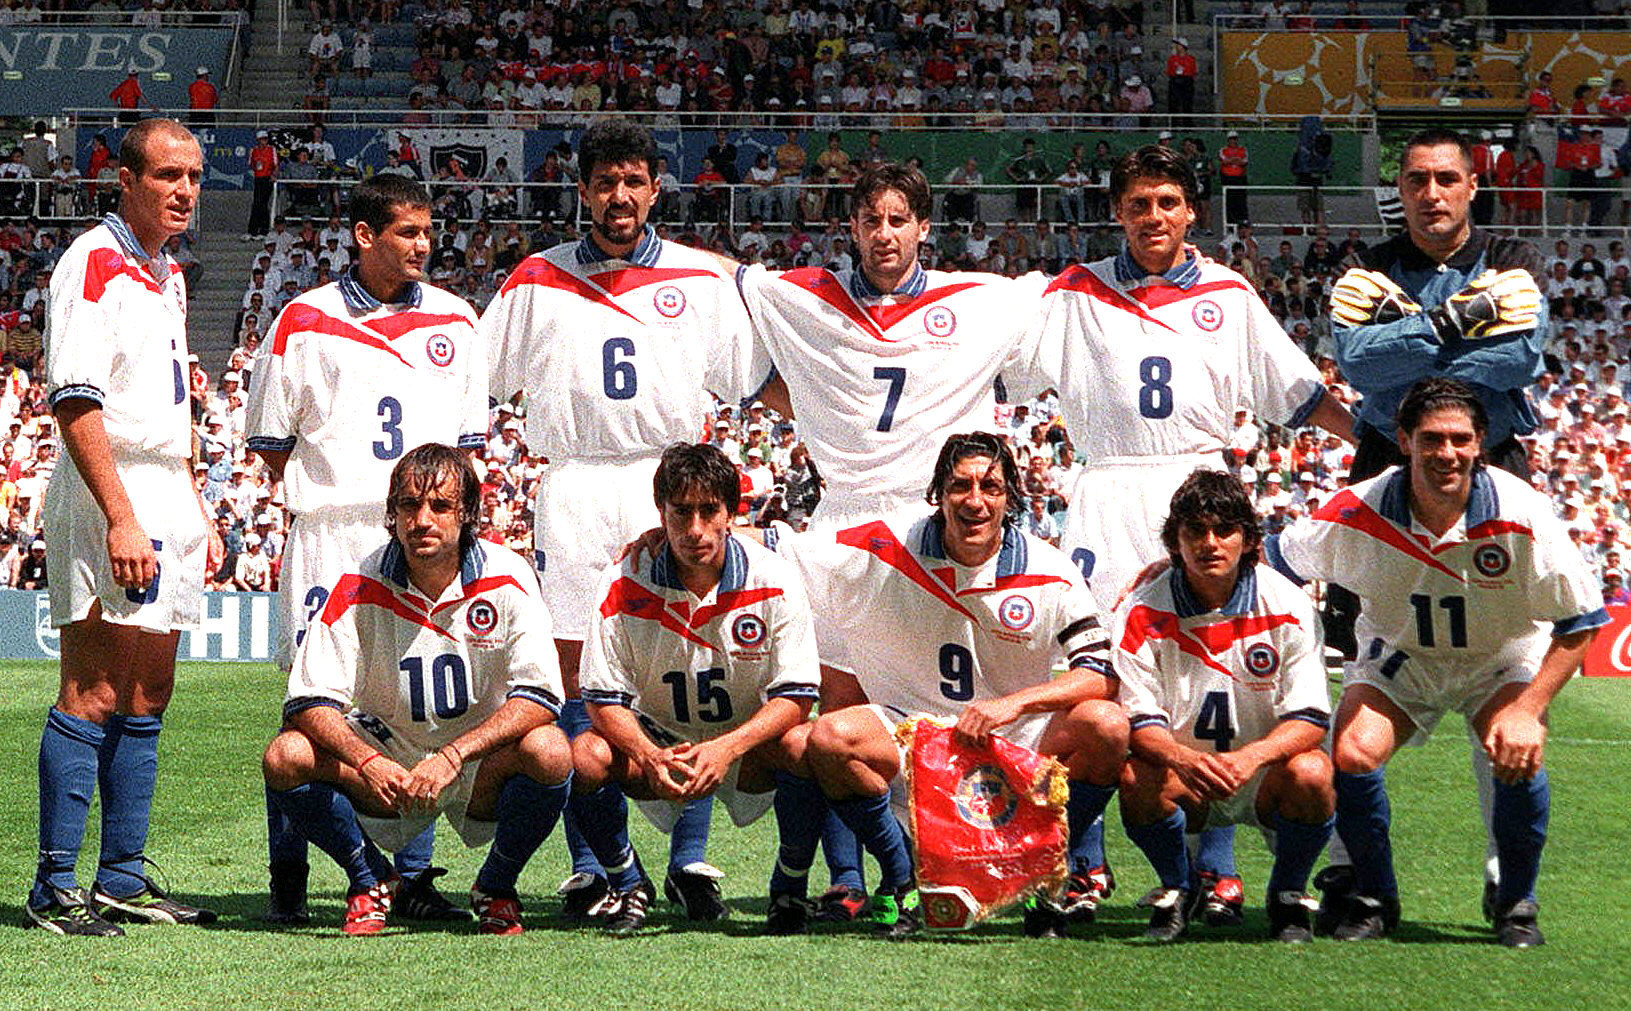 Chile-1998-Reebok-world-cup-away-kit-white-white-blue-group-photo.jpg